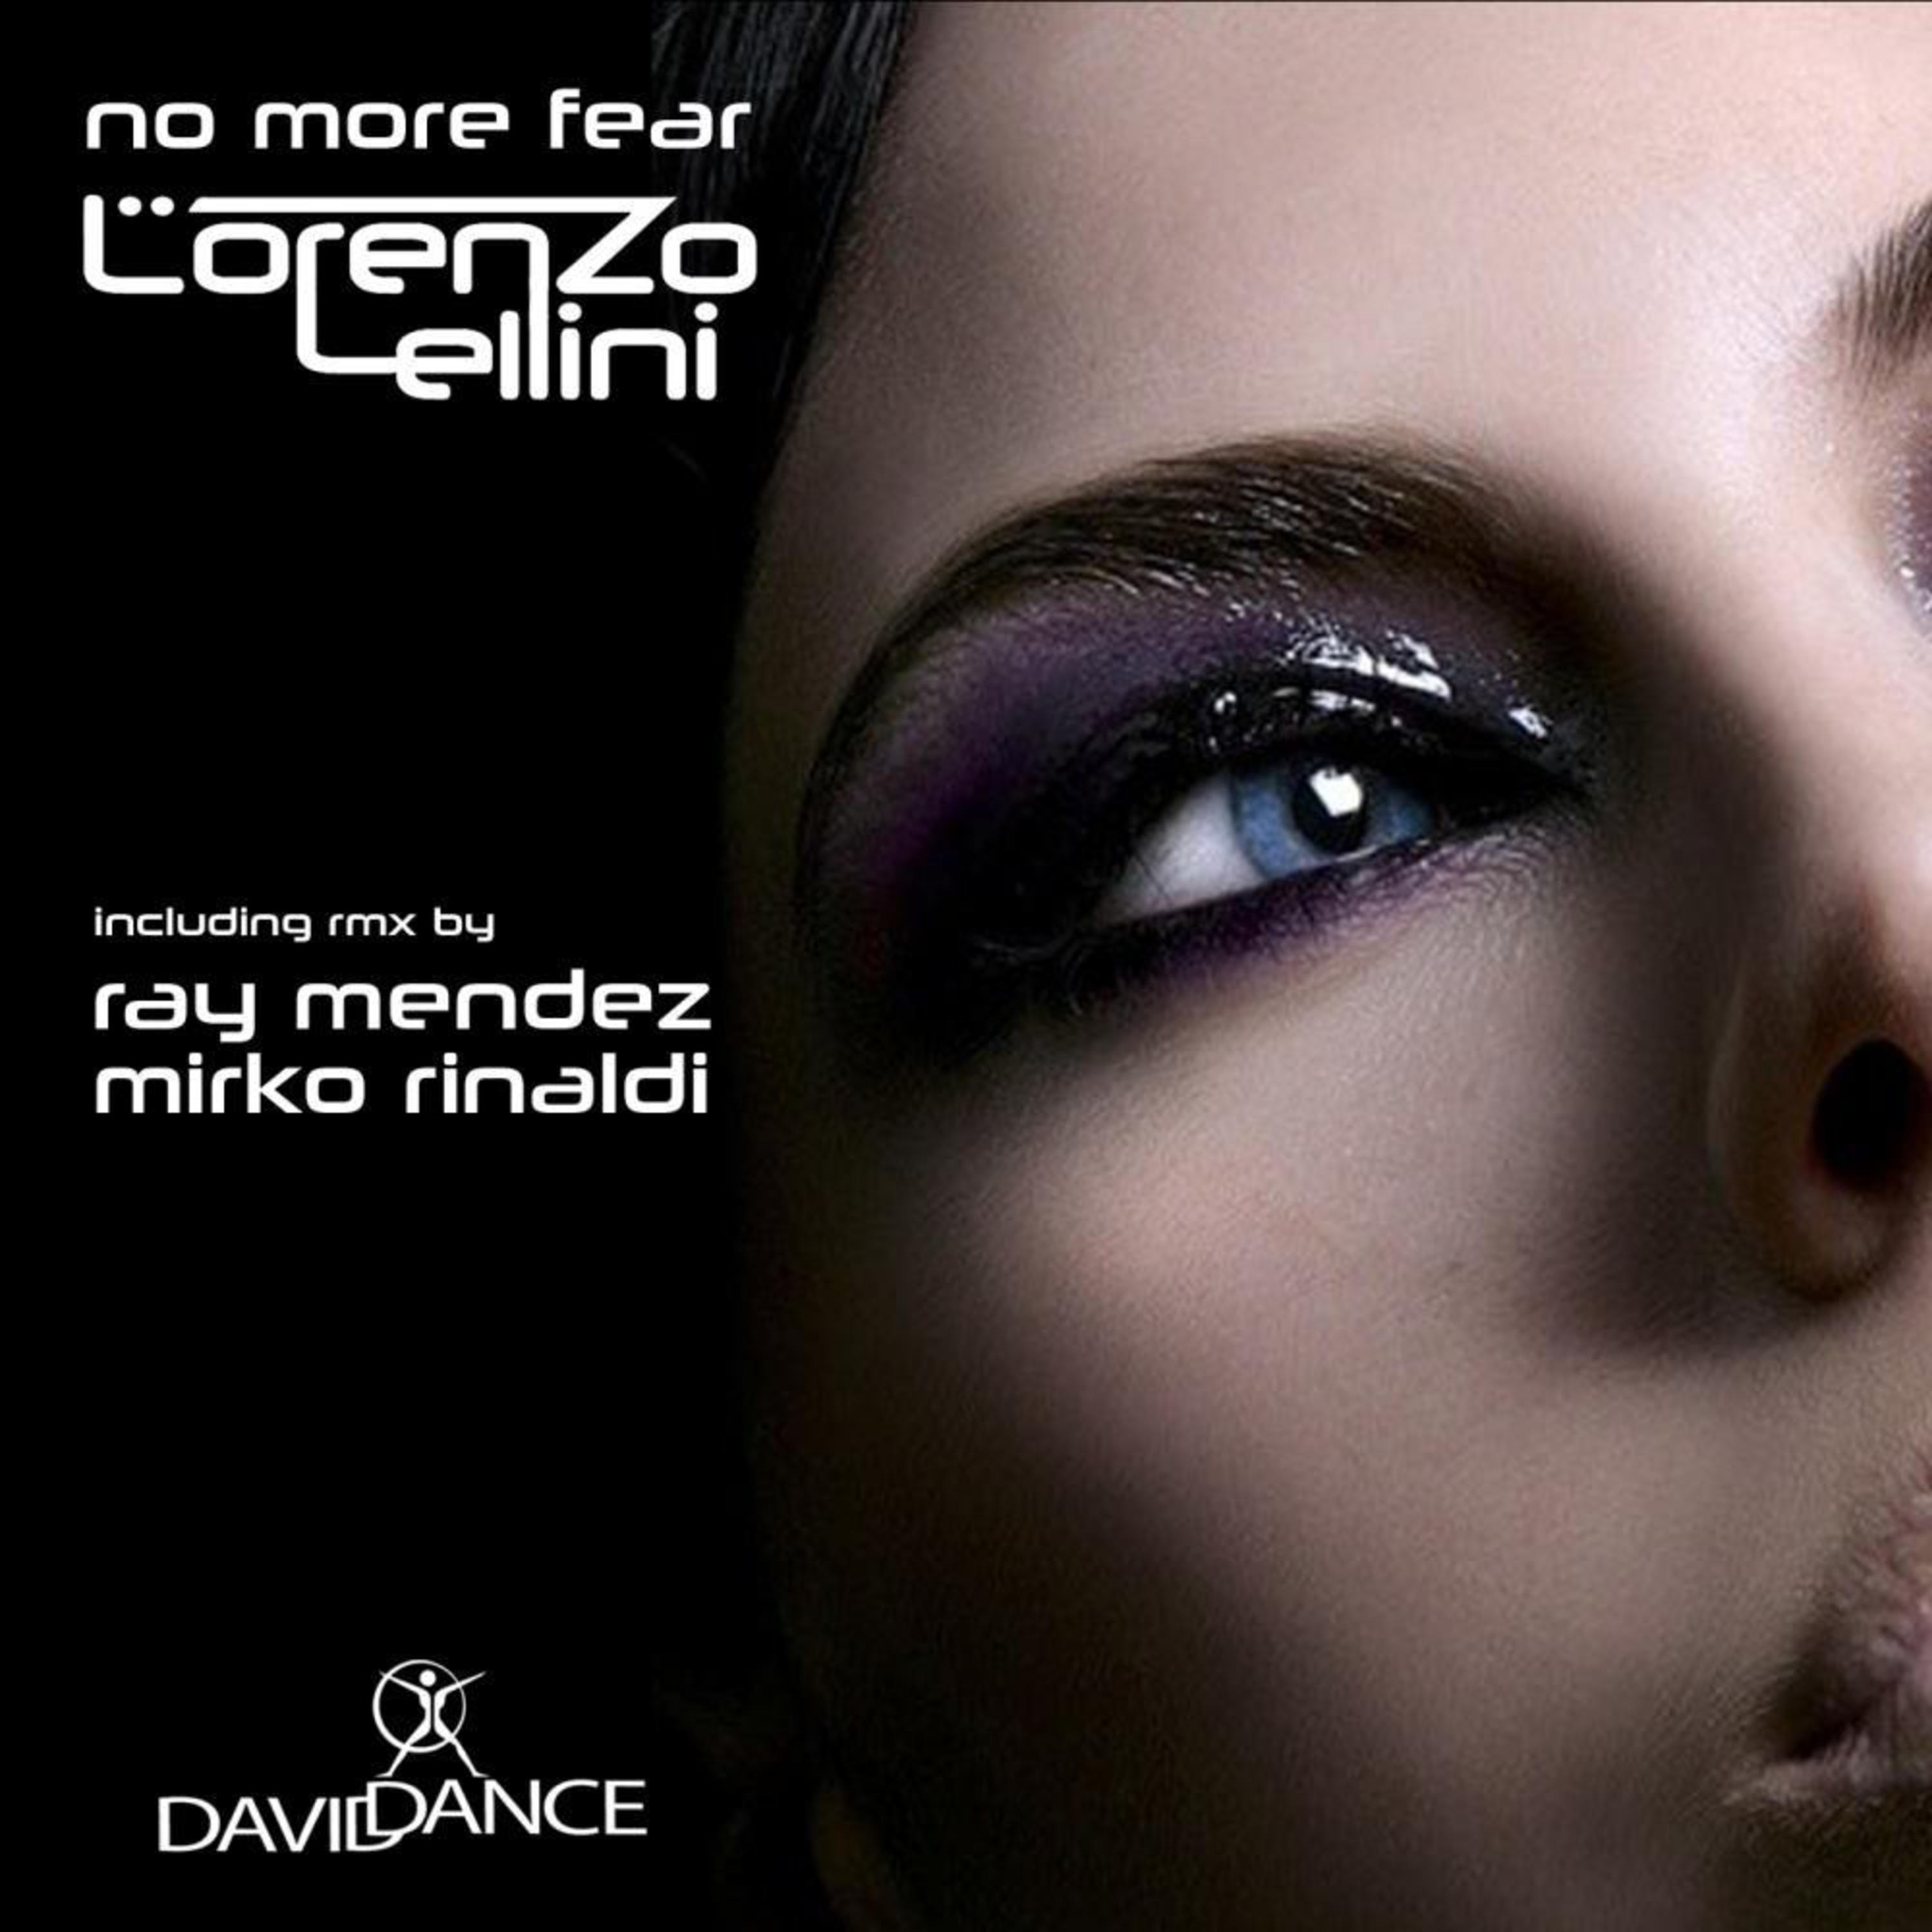 Lorenzo Lellini - No More Fear (Club Mix)